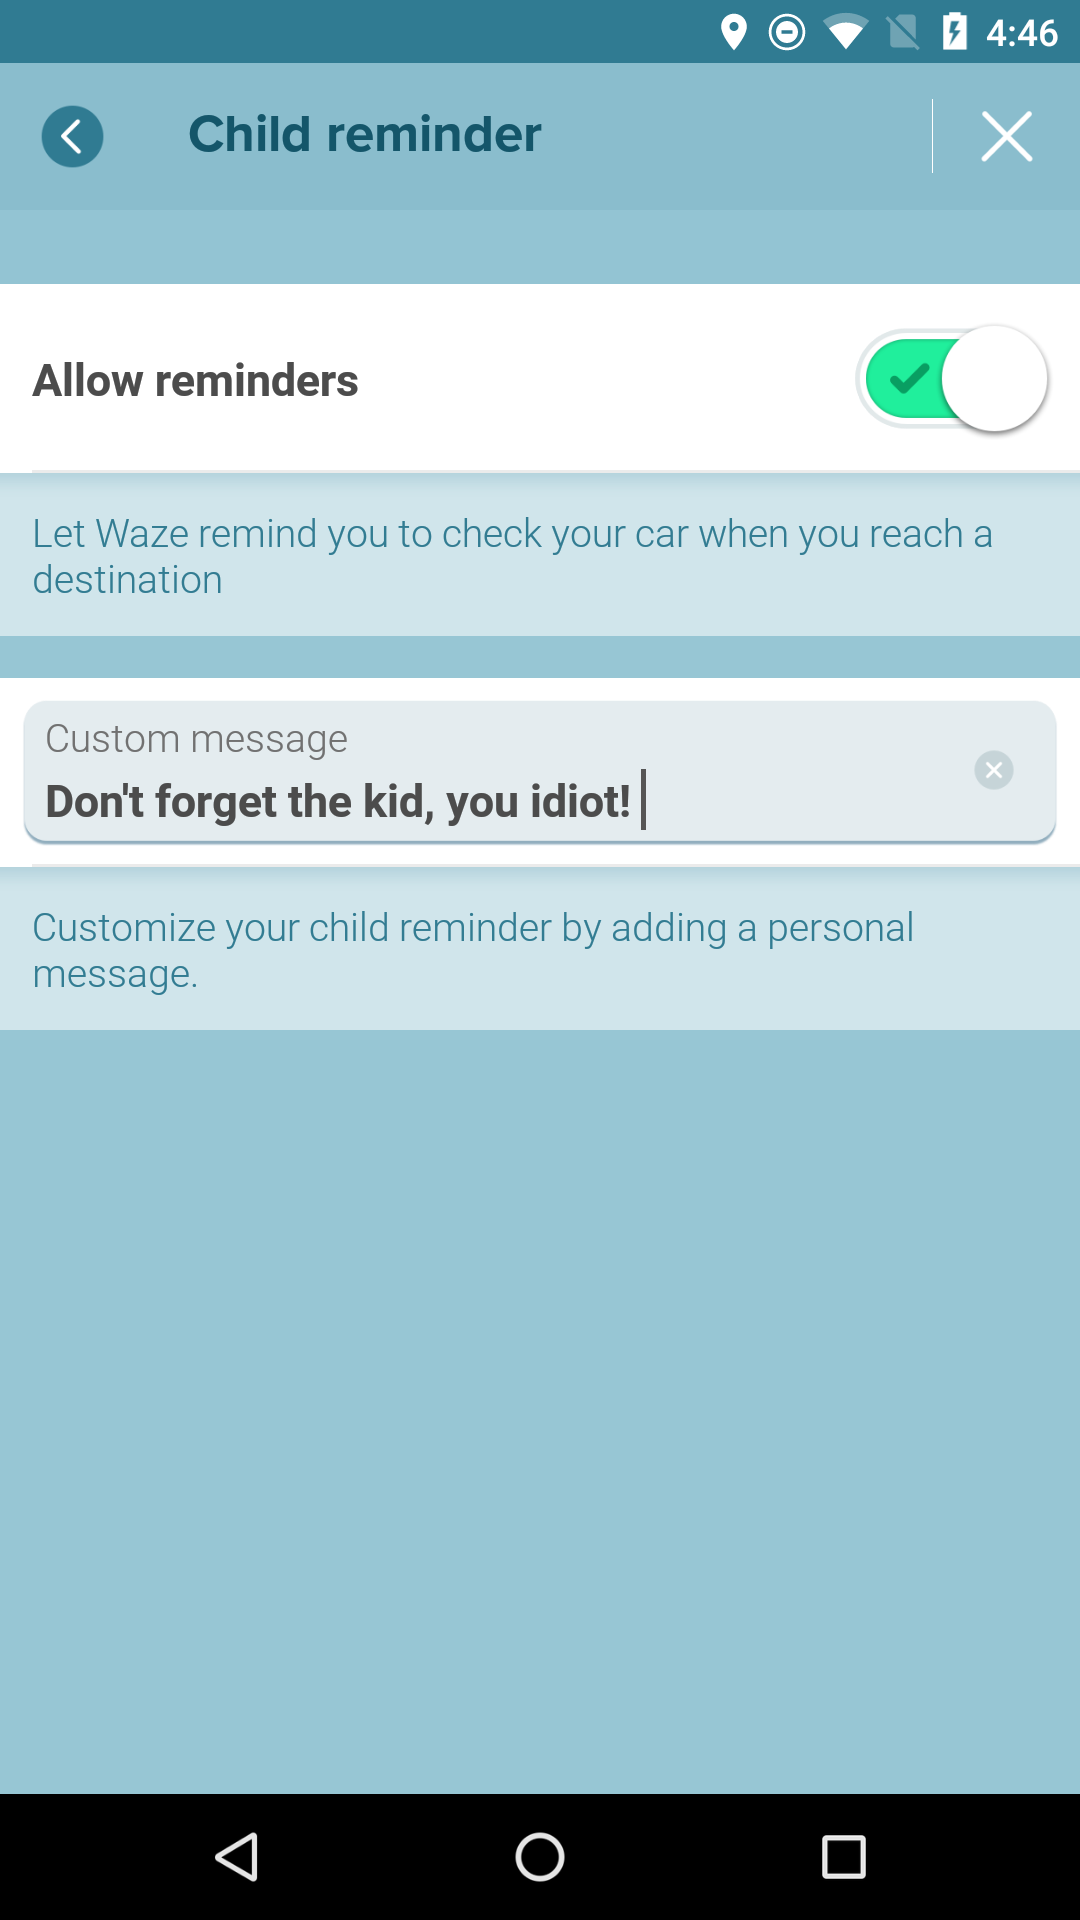 Waze beta reminds you not to forget your kid in the car